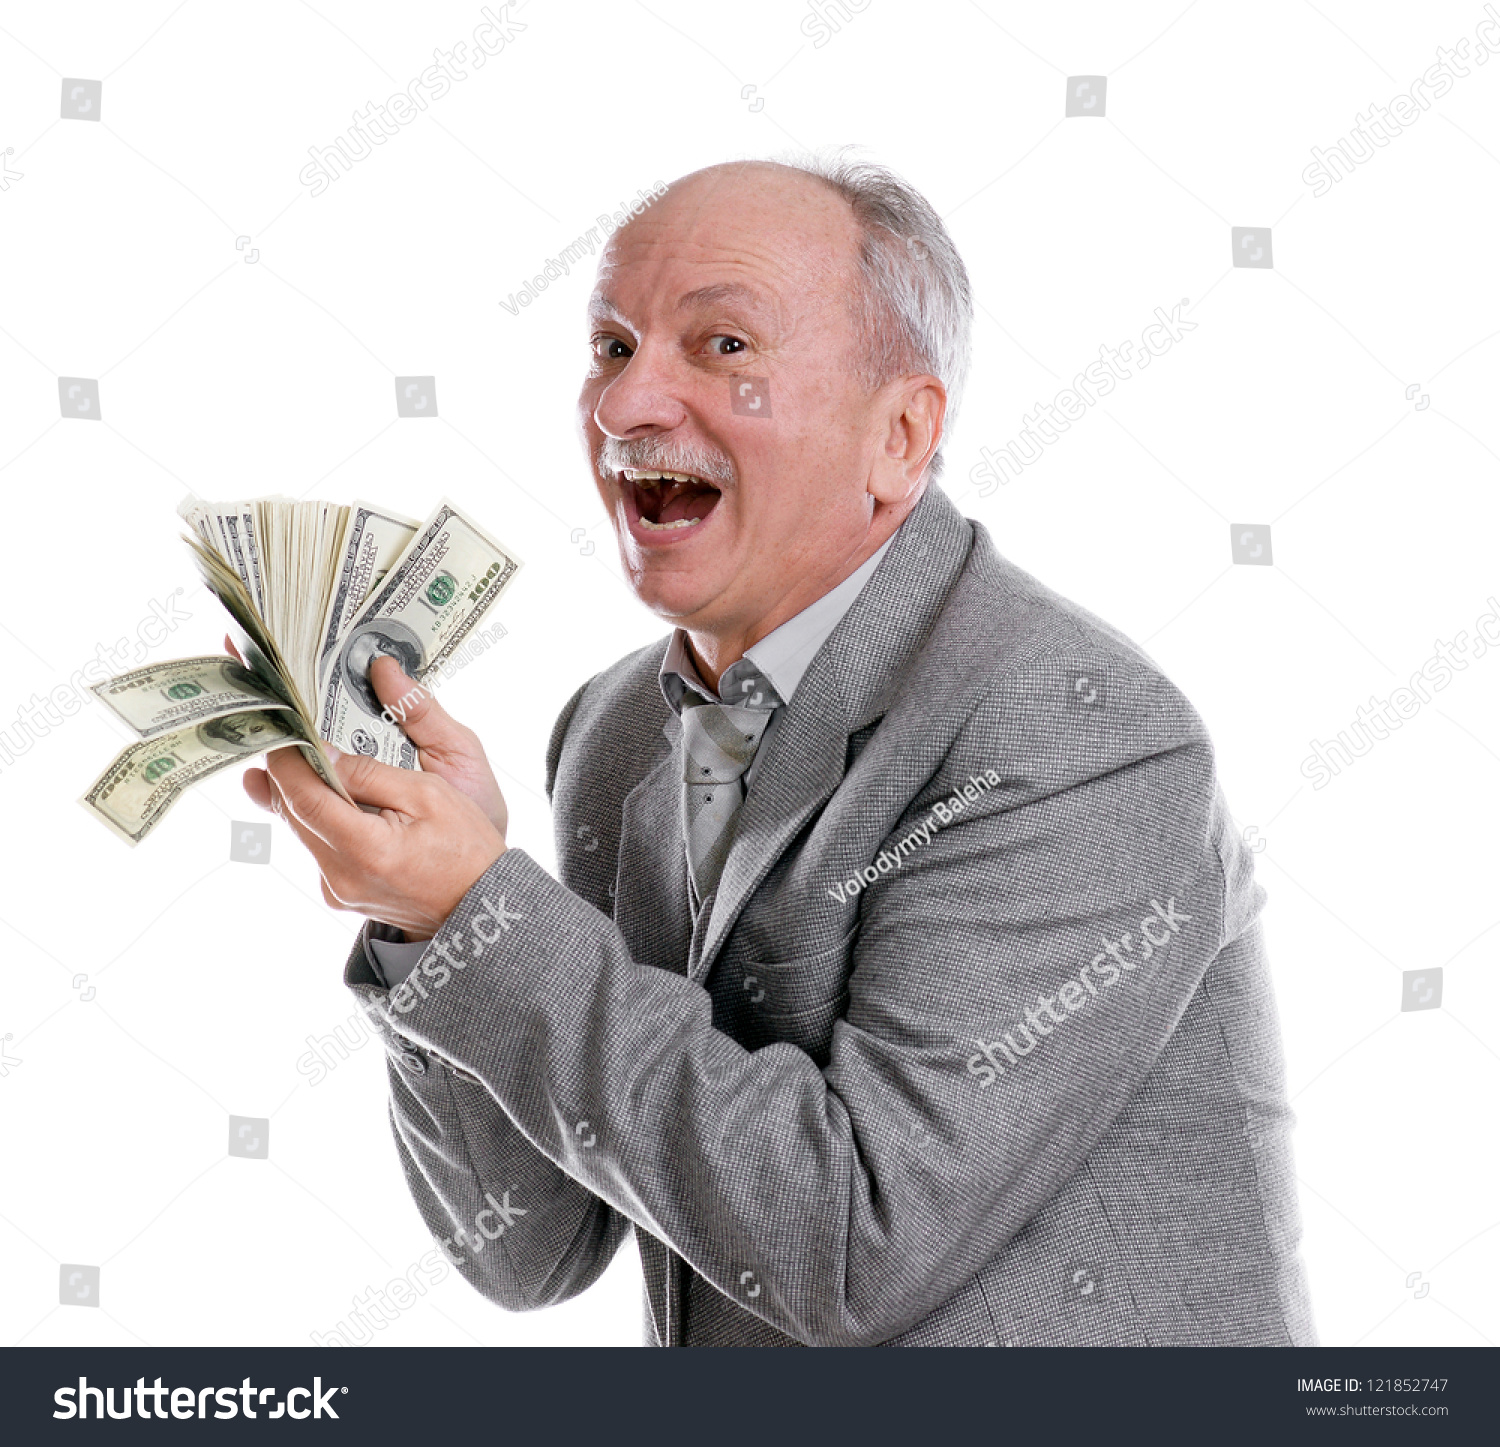 stock-photo-happy-old-man-with-money-on-a-white-background-121852747.jpg